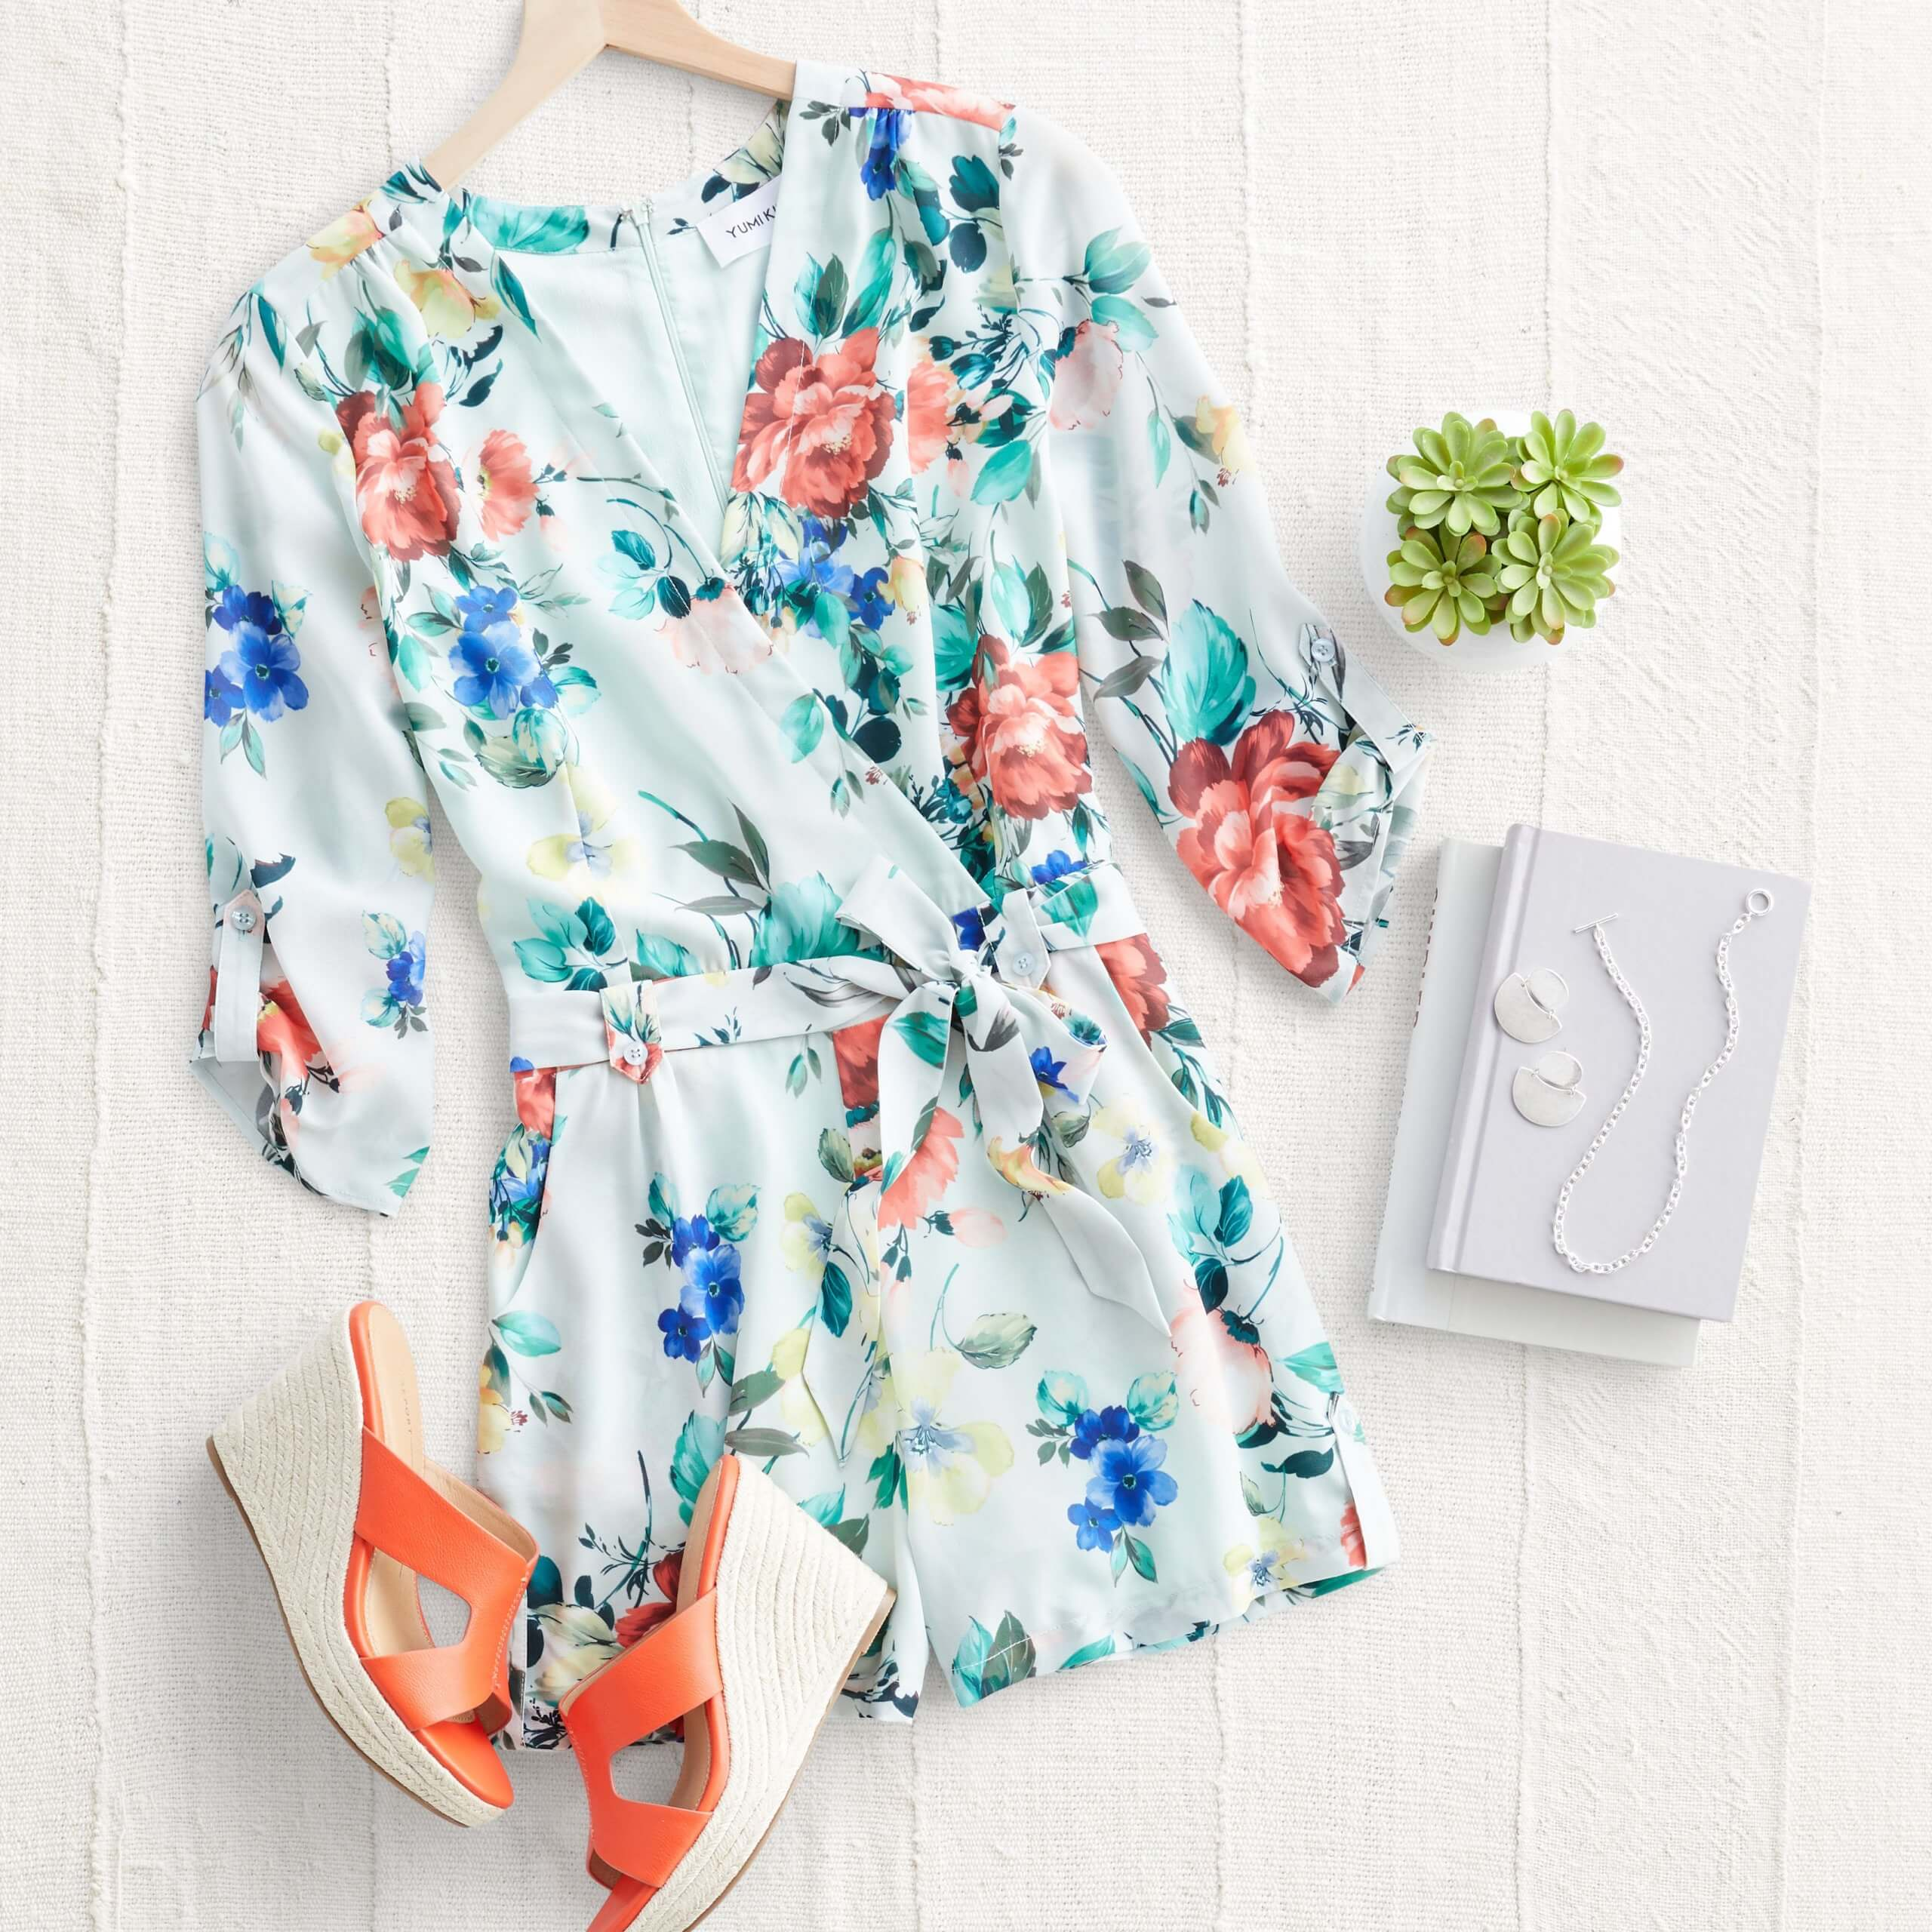 Stitch Fix Women's outfit laydown featuring white floral romper, coral wedges and silver drop earrings and necklace on white book.